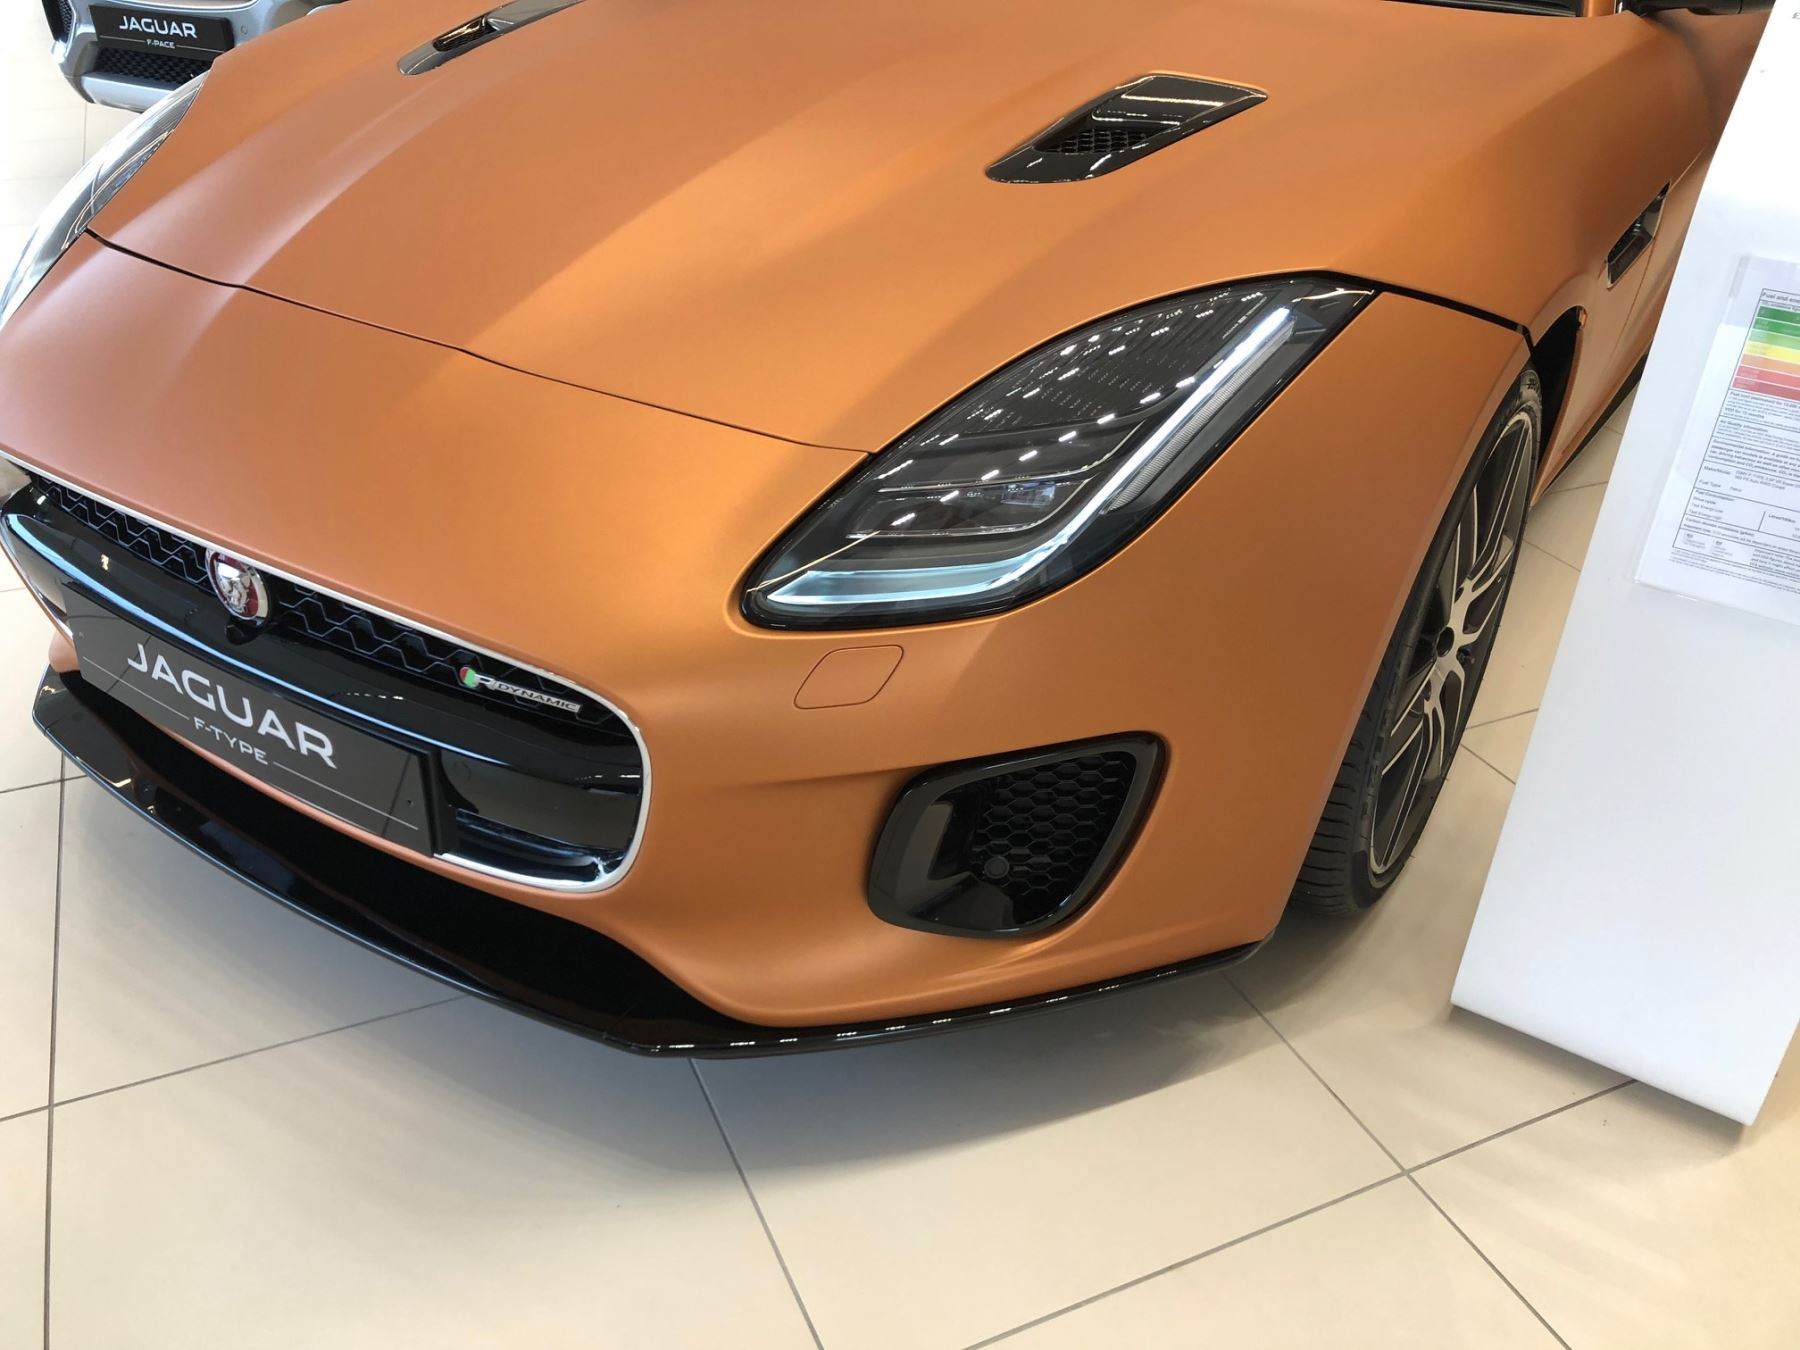 Jaguar F-TYPE Coupe 3.0 [380] Supercharged V6 R-Dynamic 2dr Auto AWD *MANAGERS SPECIAL* image 7